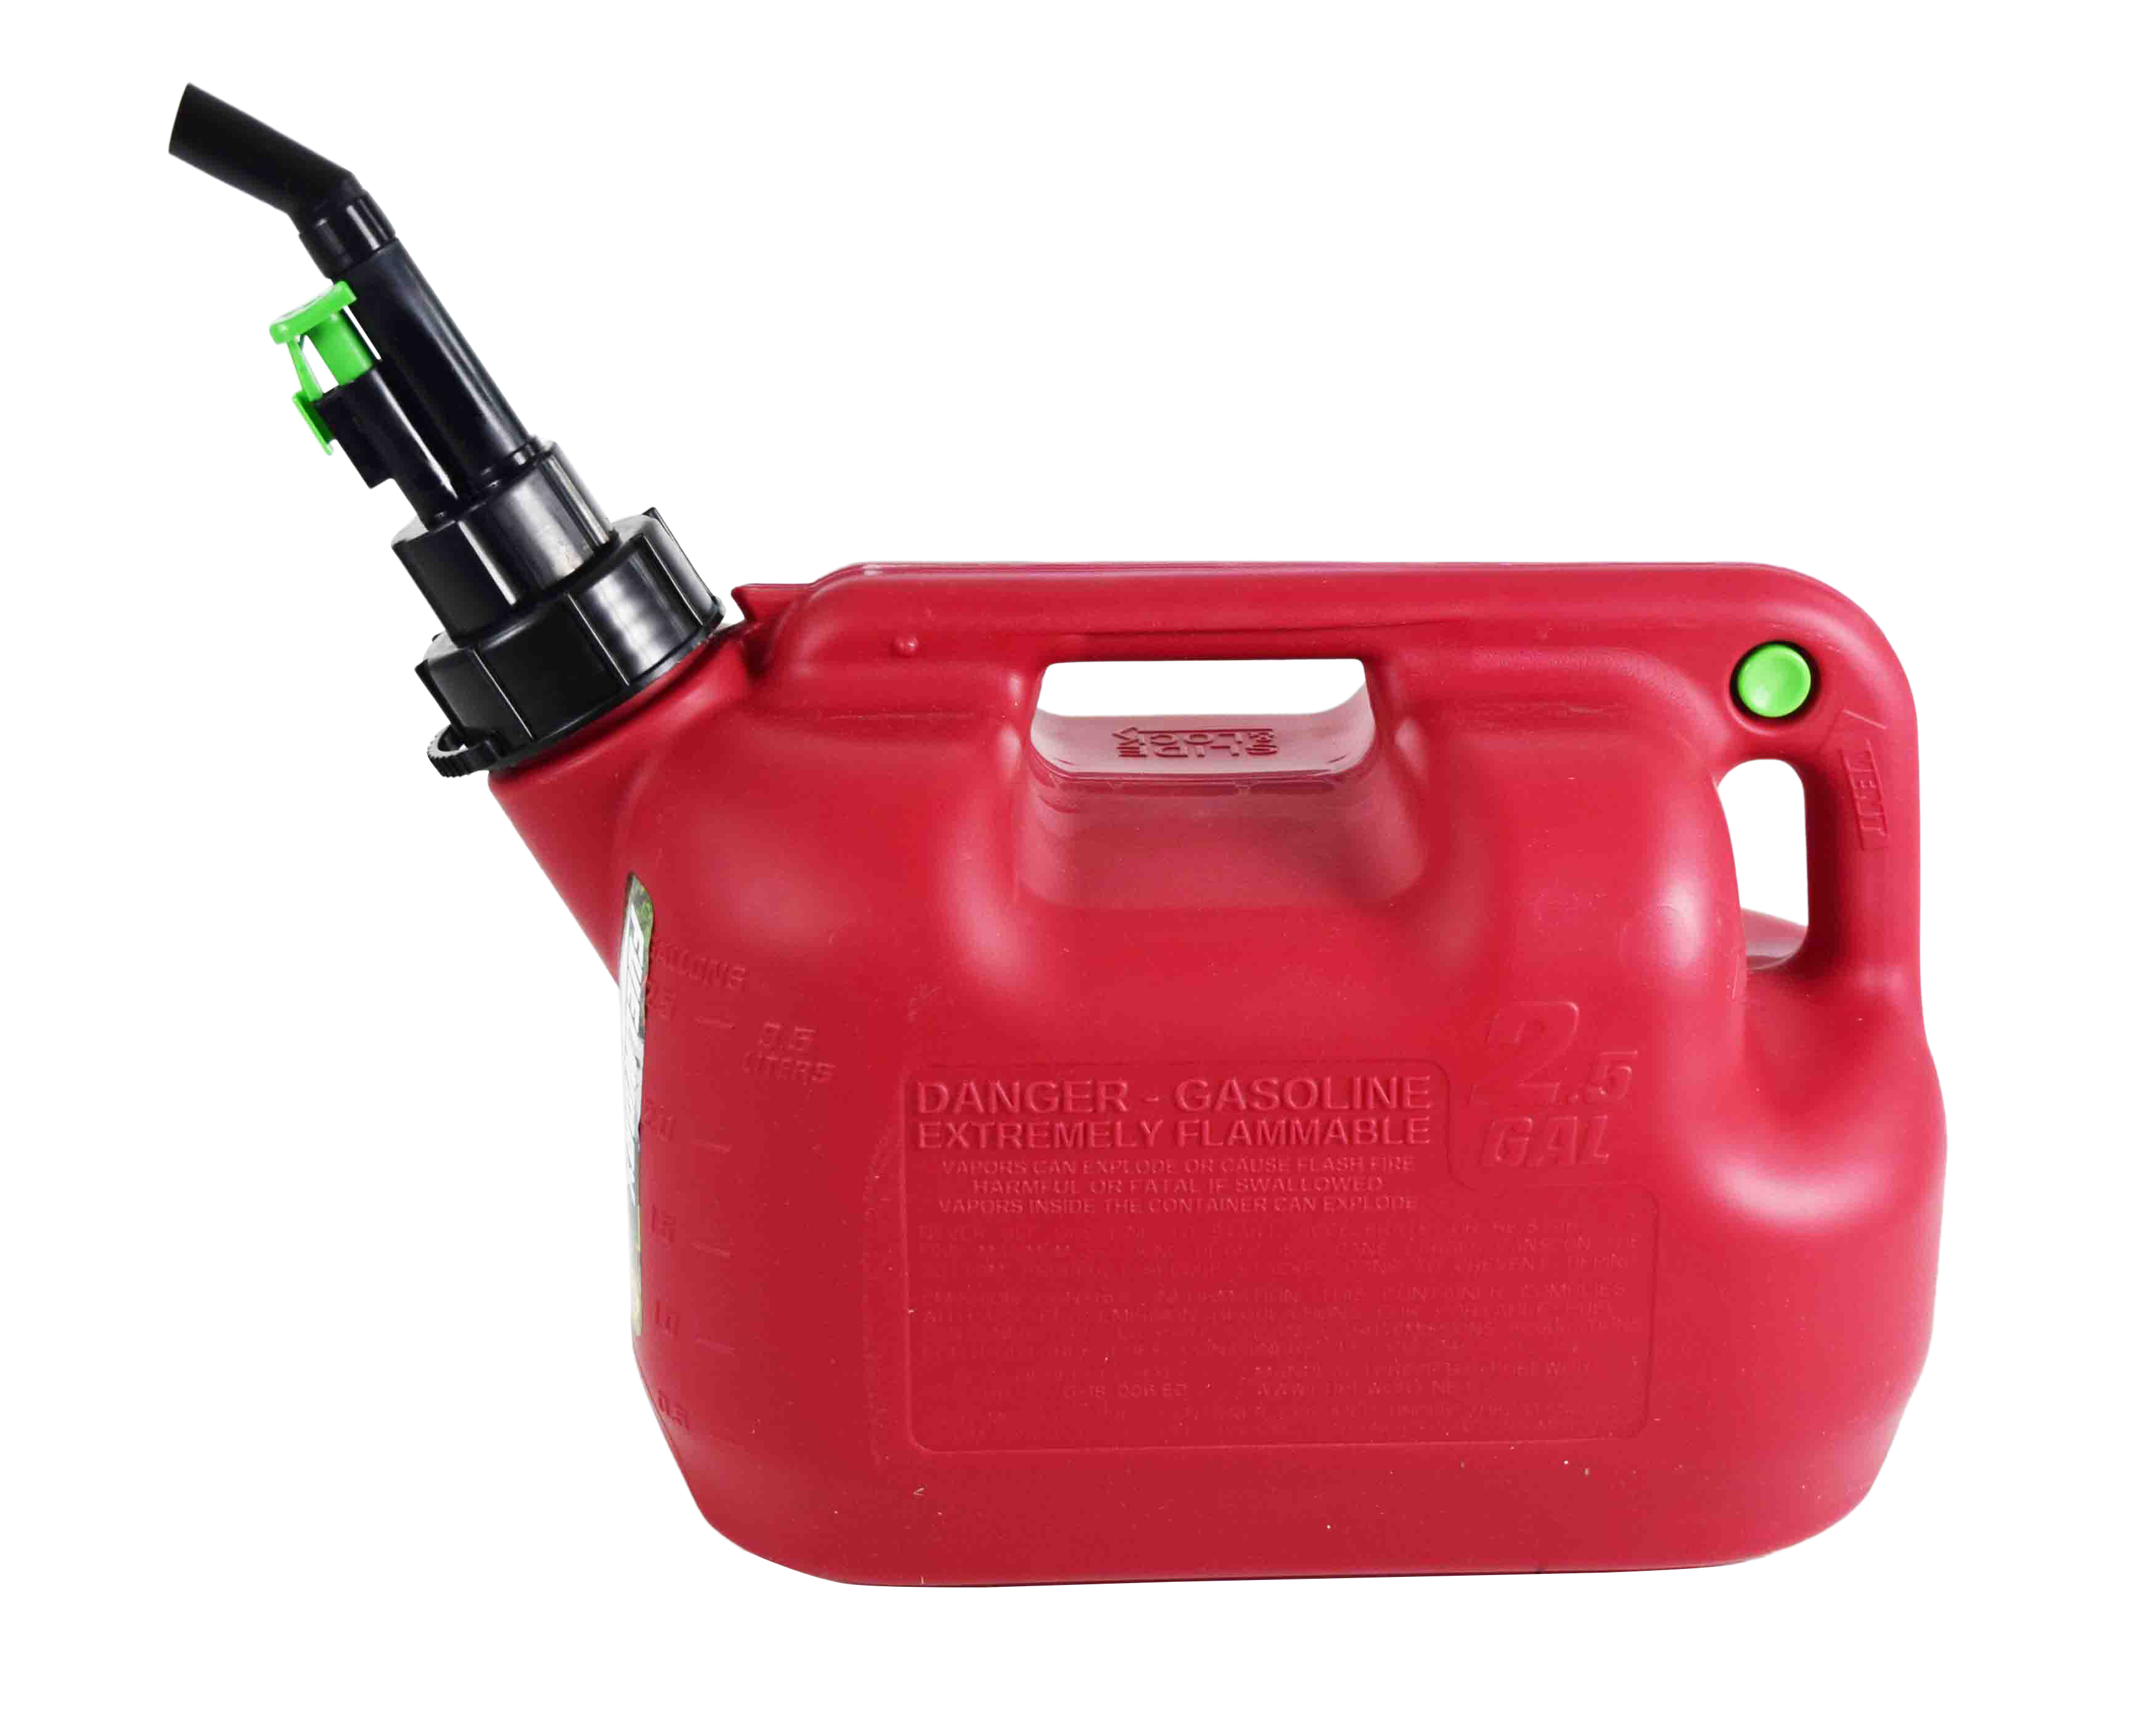 Fuelworx-Red-2.5-Gallon-Stackable-Fast-Pour-Gas-Fuel-Cans-CARB-Compliant-Made-in-The-USA-2.5-Gallon-Gas-Single-Can-image-3